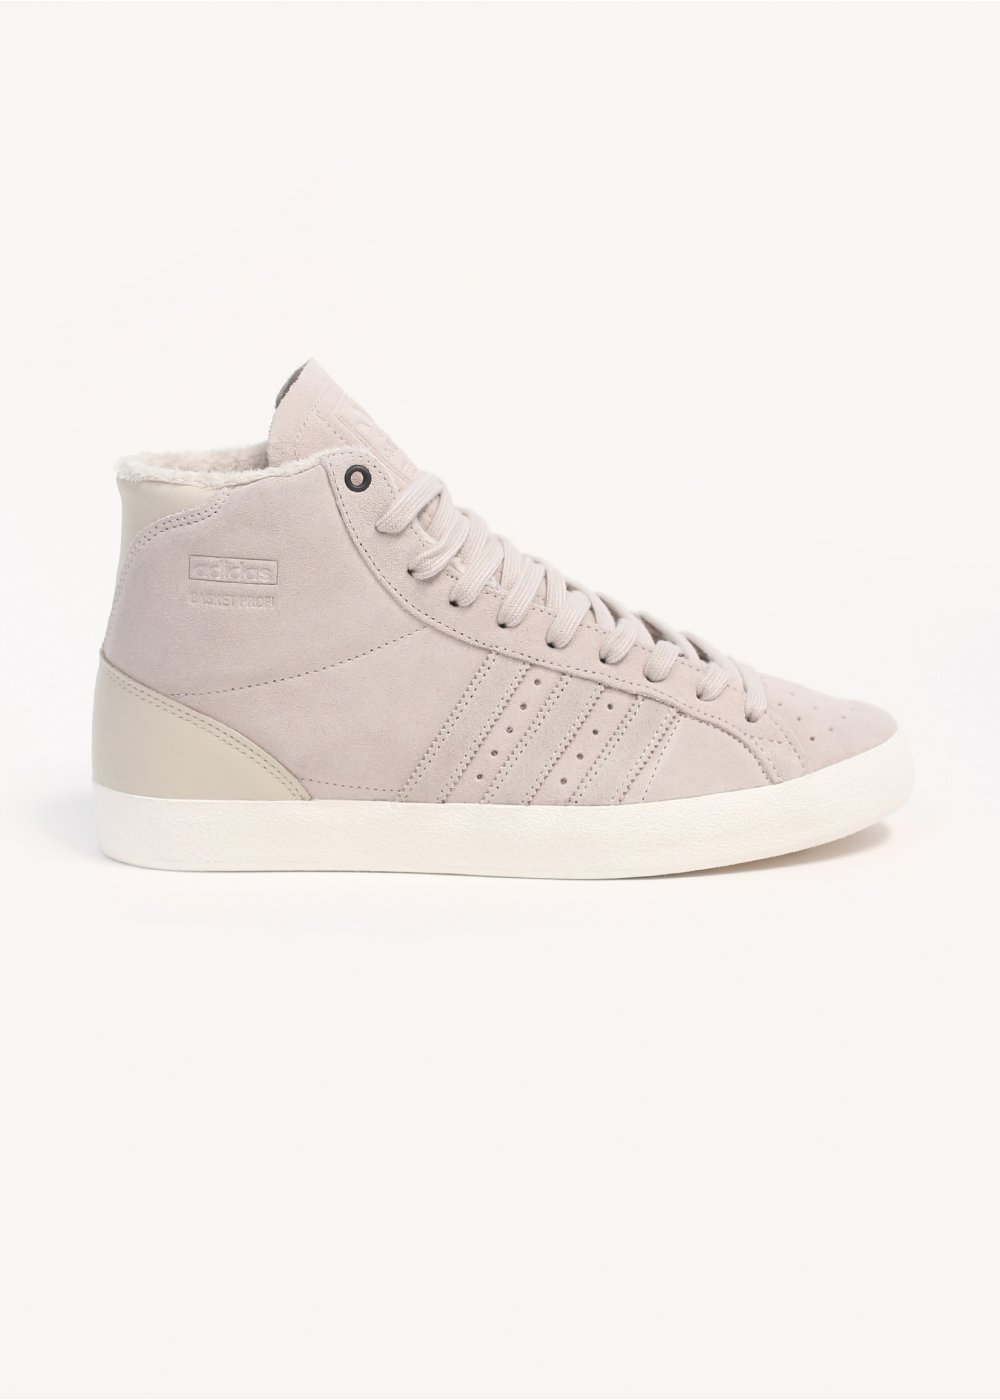 low priced 59256 42efe x United Arrows Basket Profi OG UA Trainers - Bliss  White Vapour